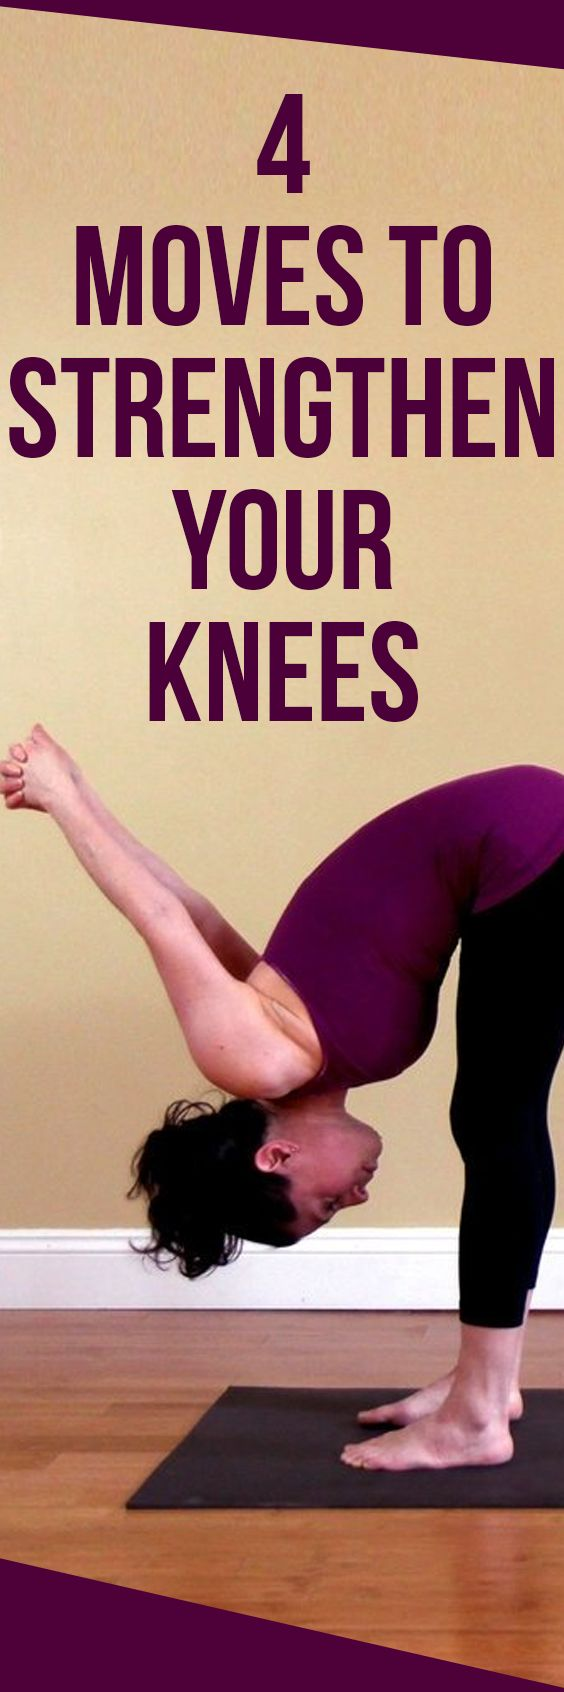 4 Moves to Strengthen Your Knees